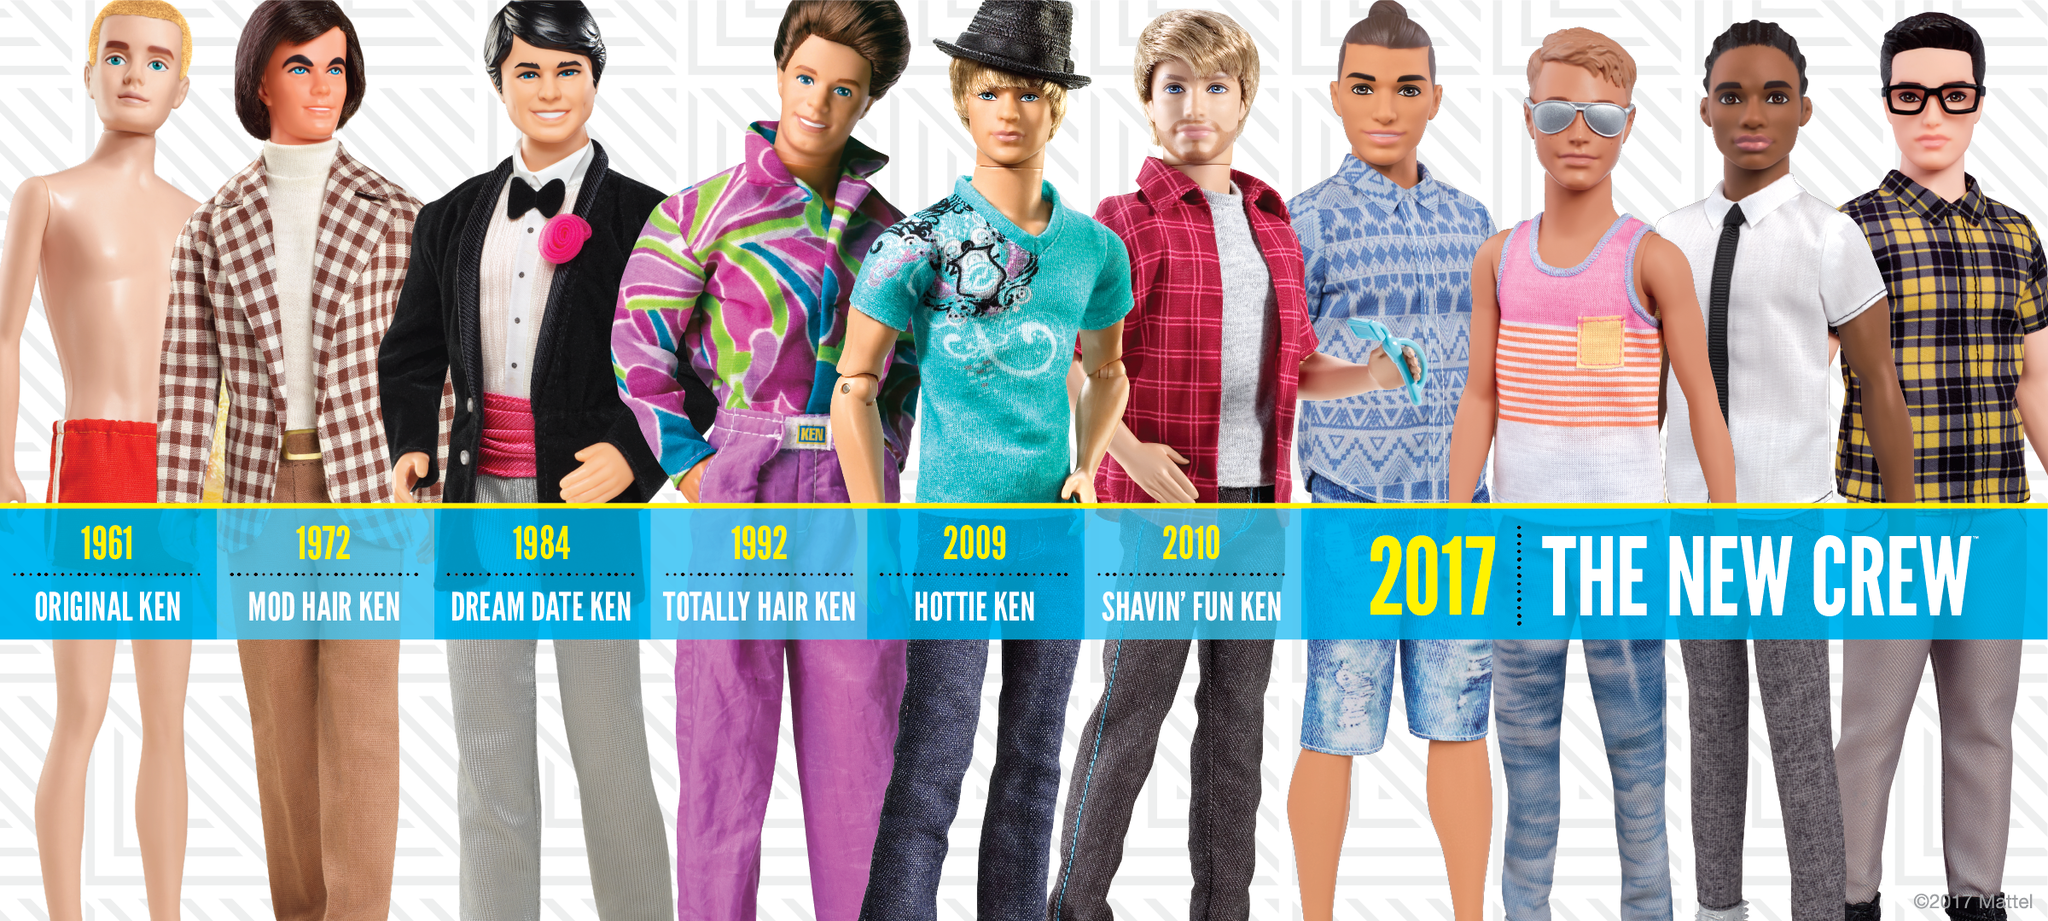 London store to have Ken doll exhibition, offer new classic Ken T-shirt